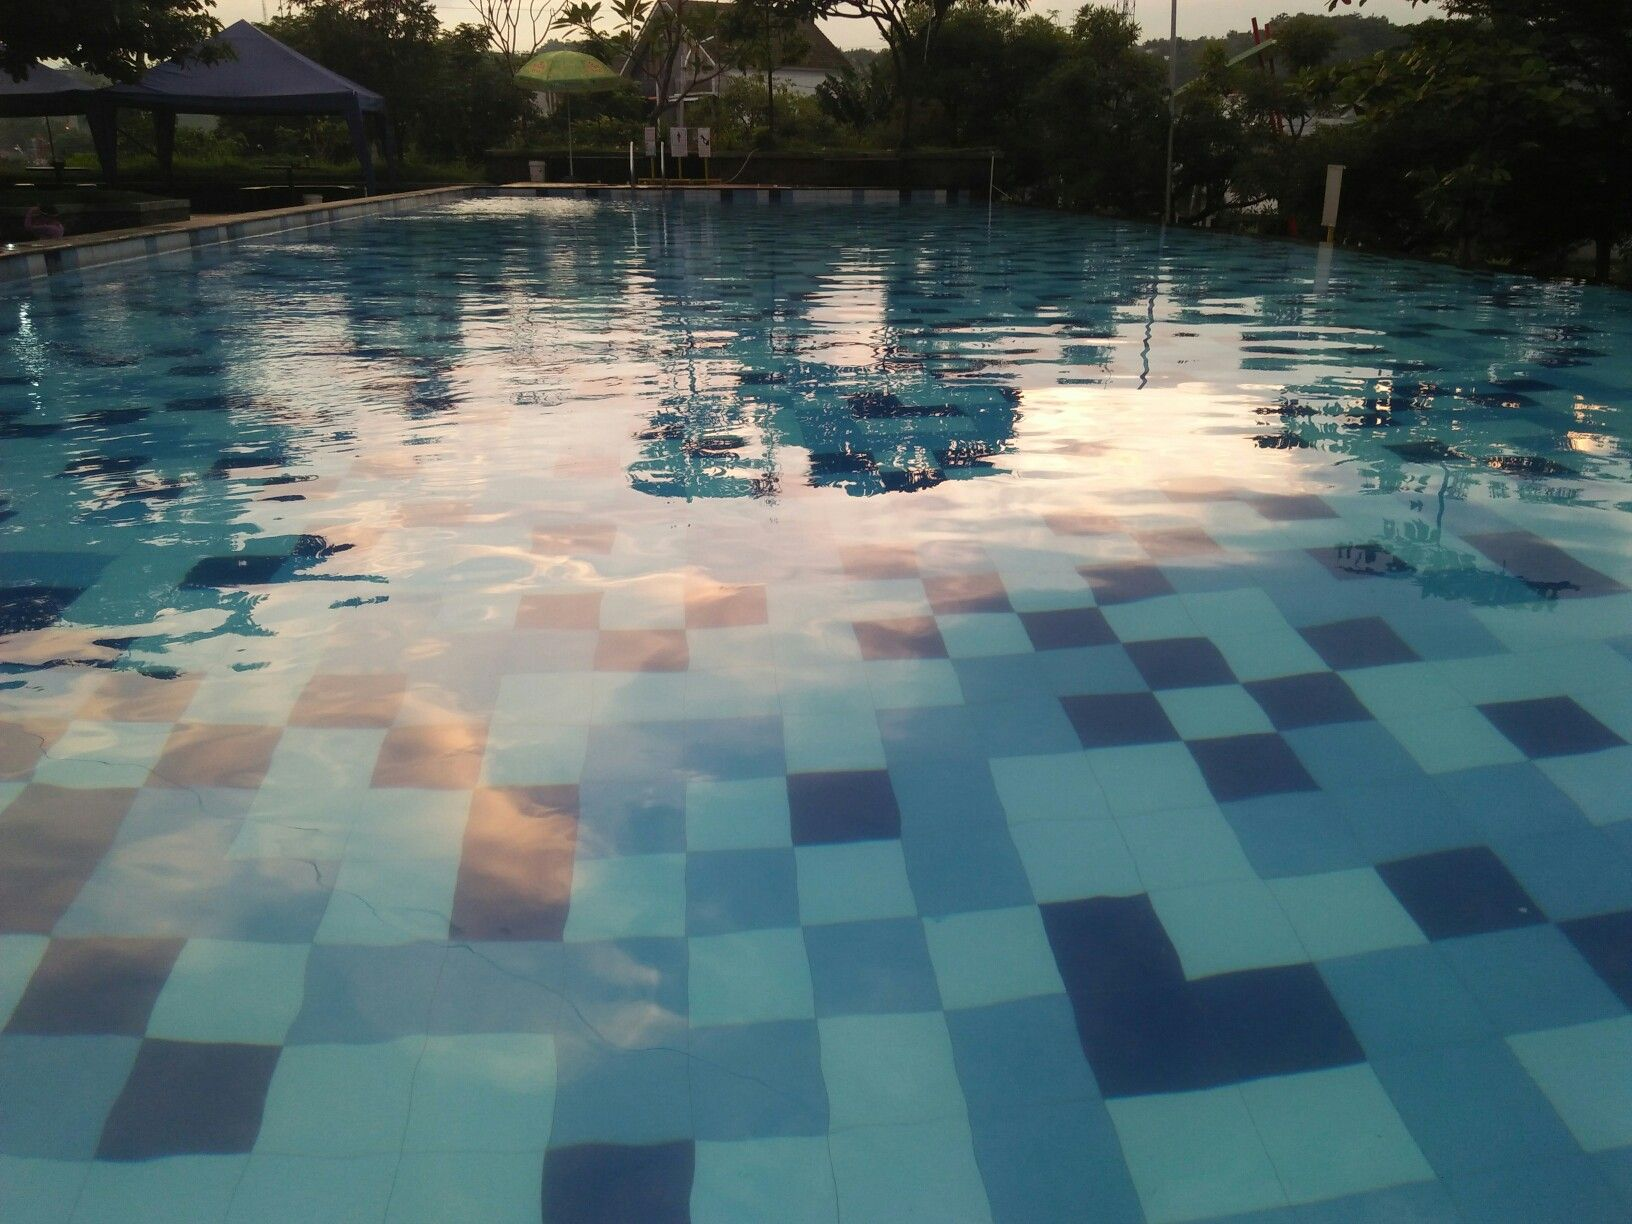 Usually here's so crowded | Swimming pool | Pinterest on